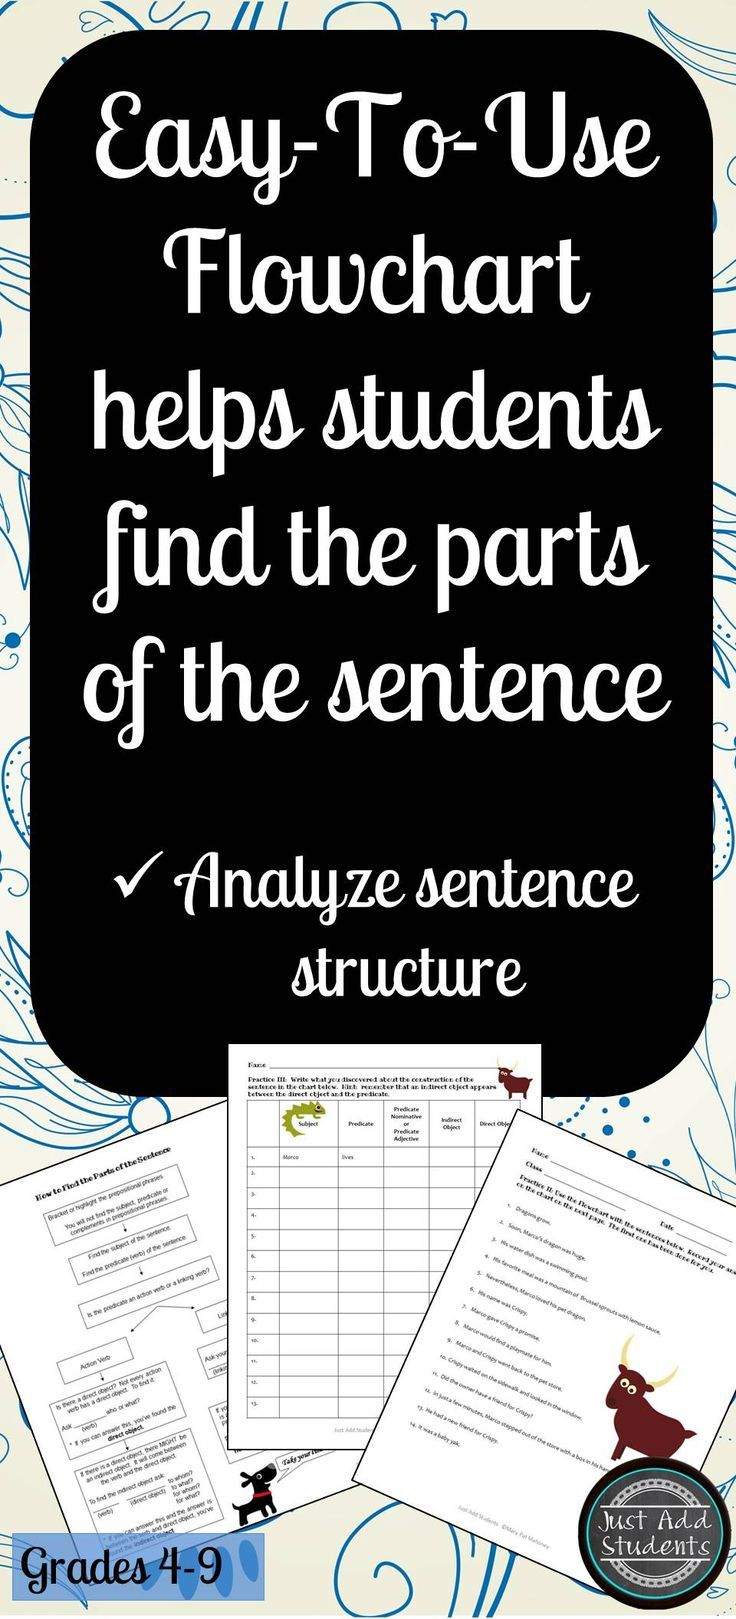 Teach students a logical method to analyze sentence structure -- this flowchart gives them the steps to understanding how sentences are constructed and how they can improve the sentence structure in their own writing.